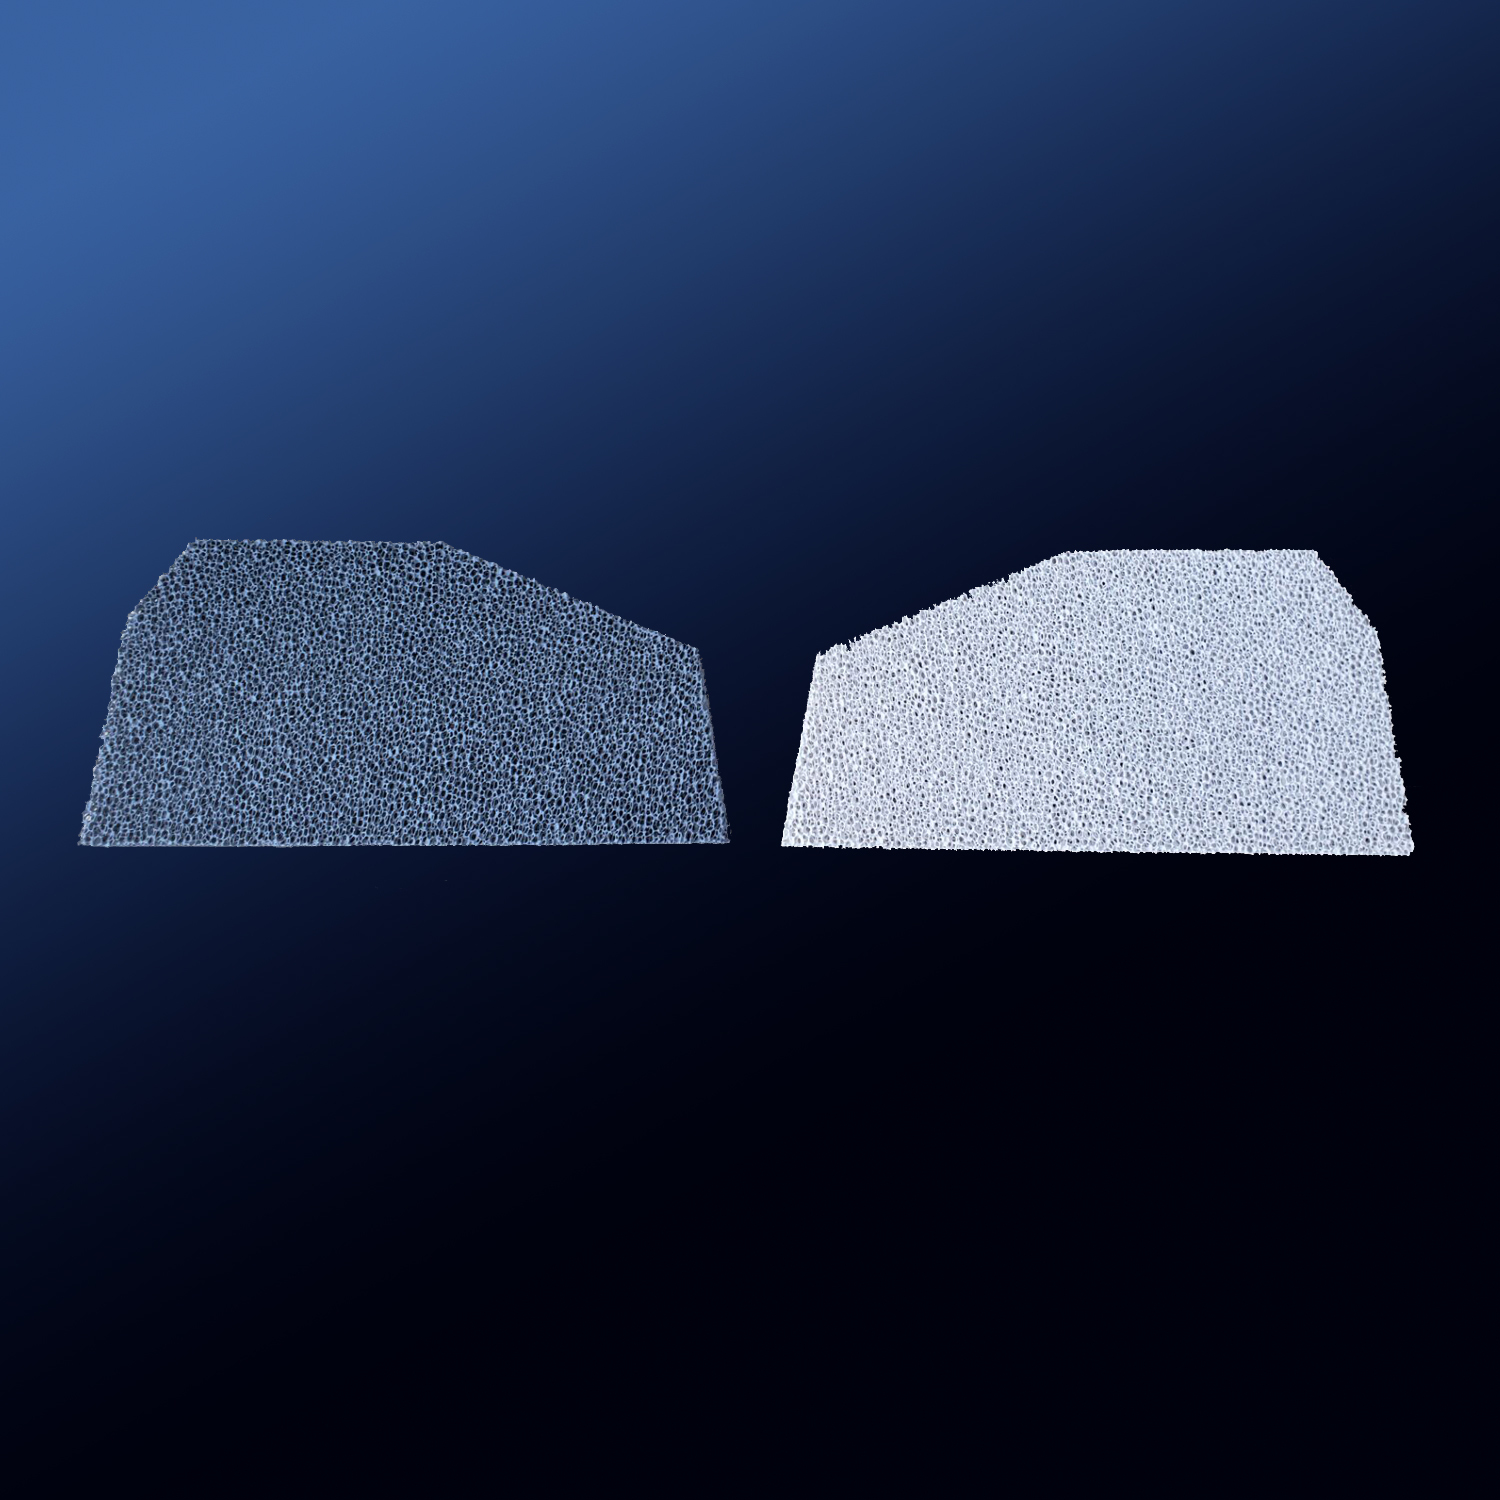 Irregular Silicon Carbide Ceramic Foam Filter